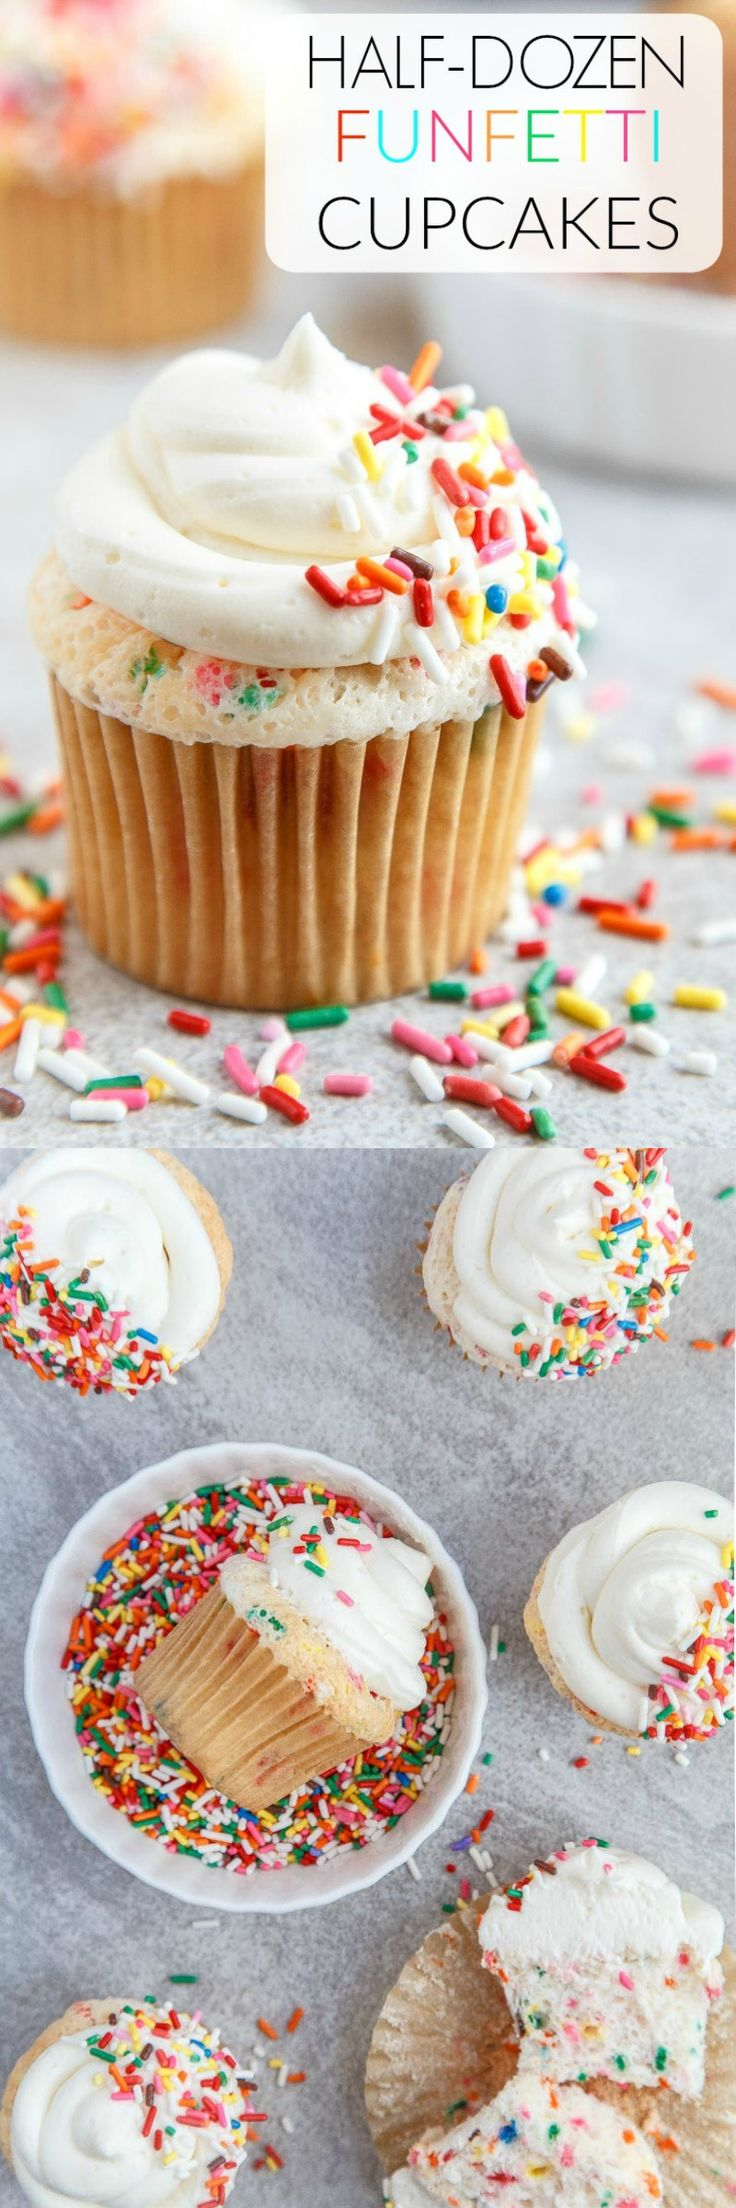 A small batch (6 cupcakes) of homemade funfetti cupcakes! Do you have 2 tablespoons of sprinkles lingering in your pantry like I do? @DessertForTwo